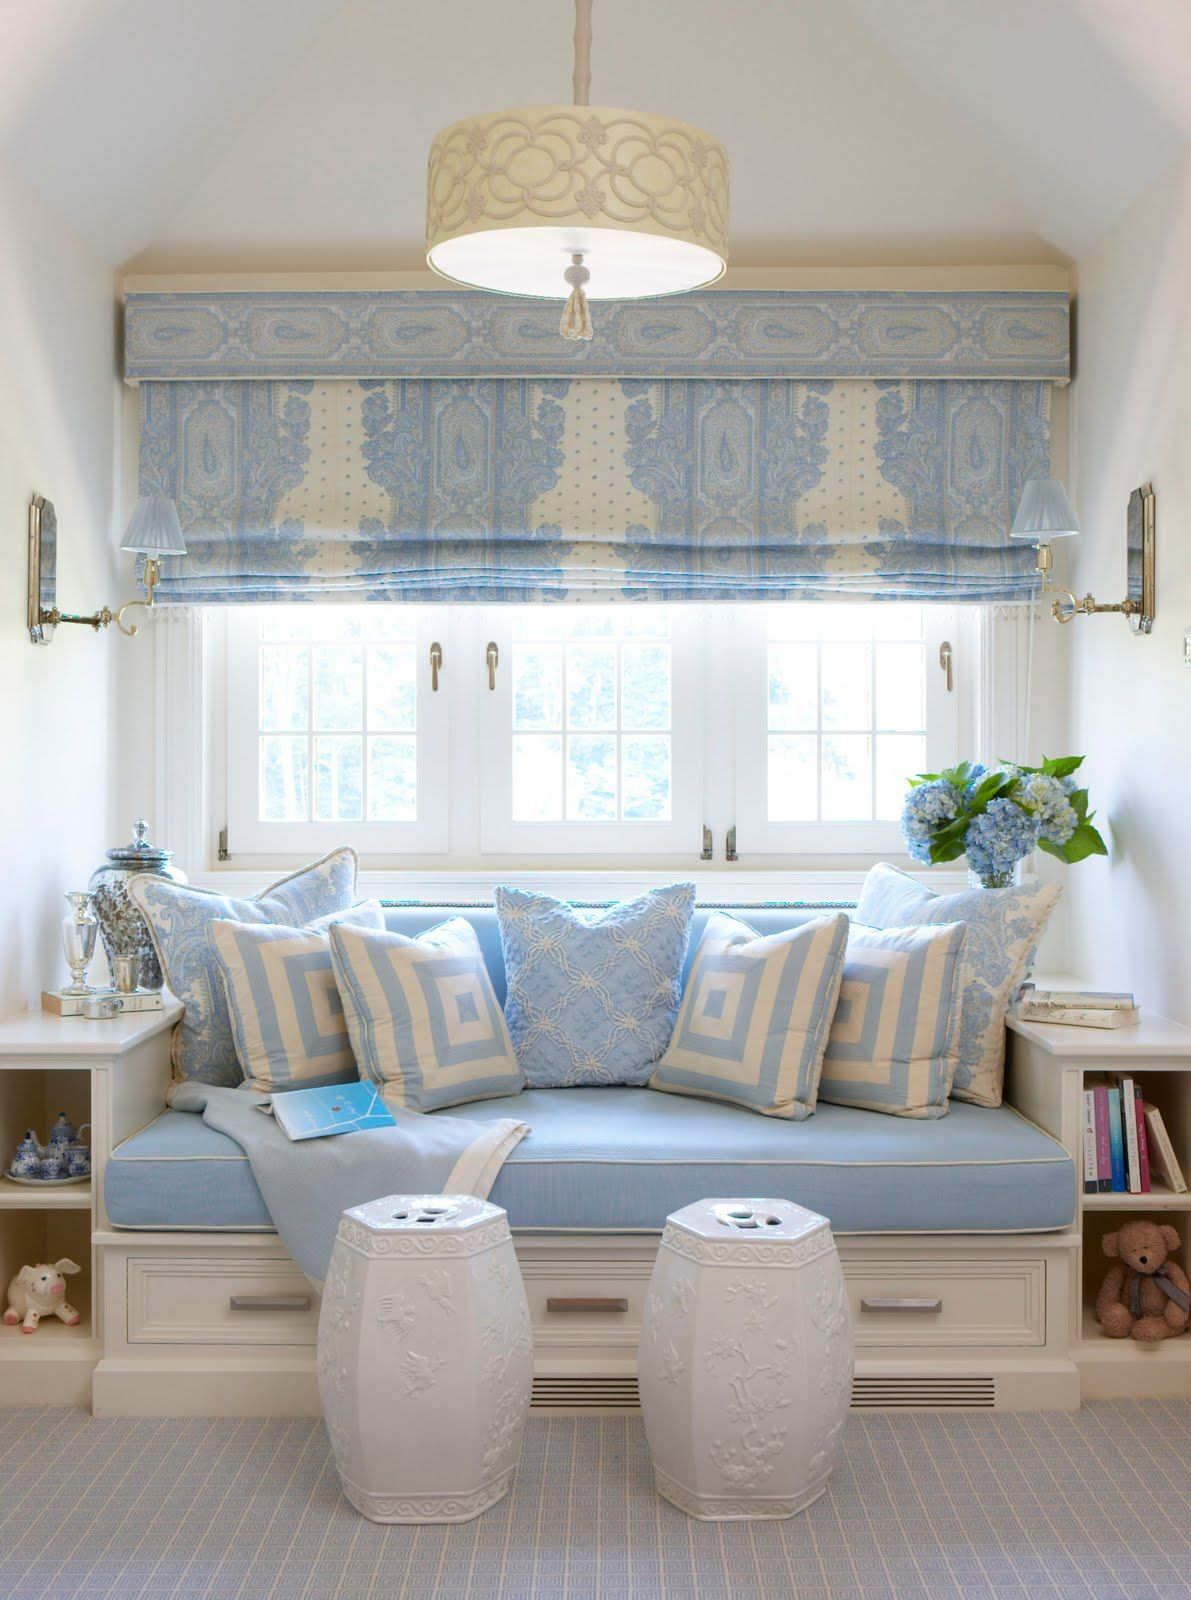 Window seat with bed  bedroom with window seat  google search  bed and breakfast bedroom